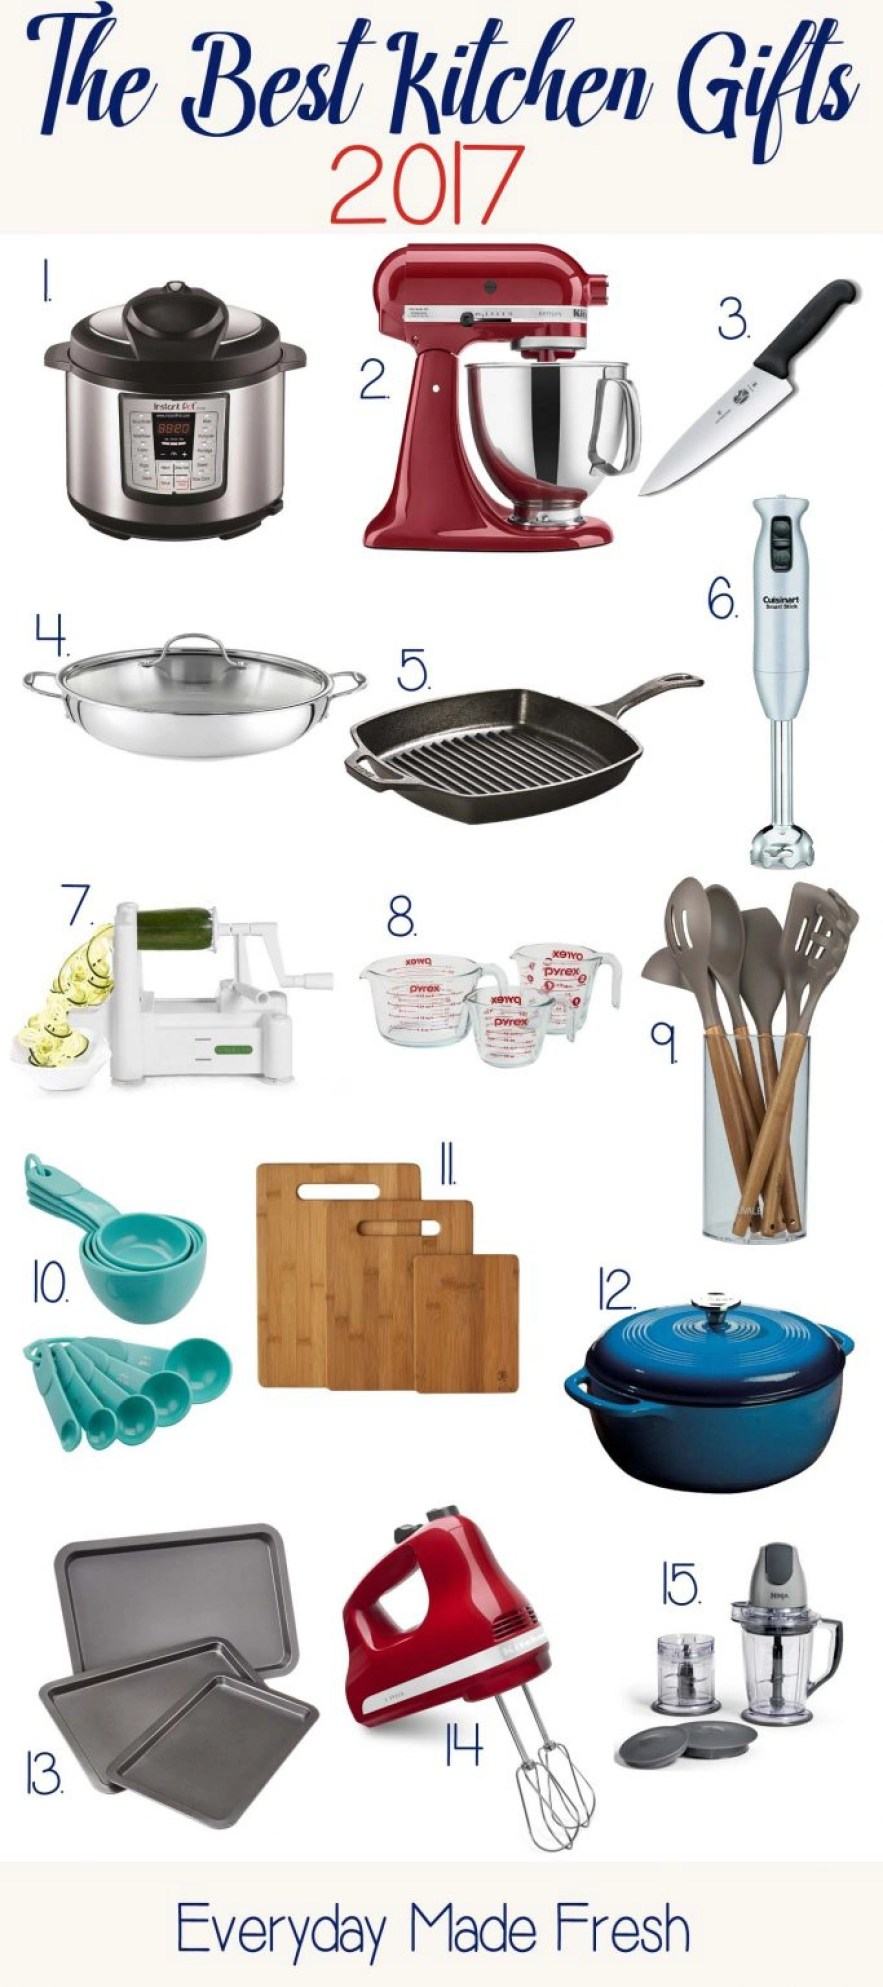 The Best Kitchen Gifts 2017 - Everyday Made Fresh